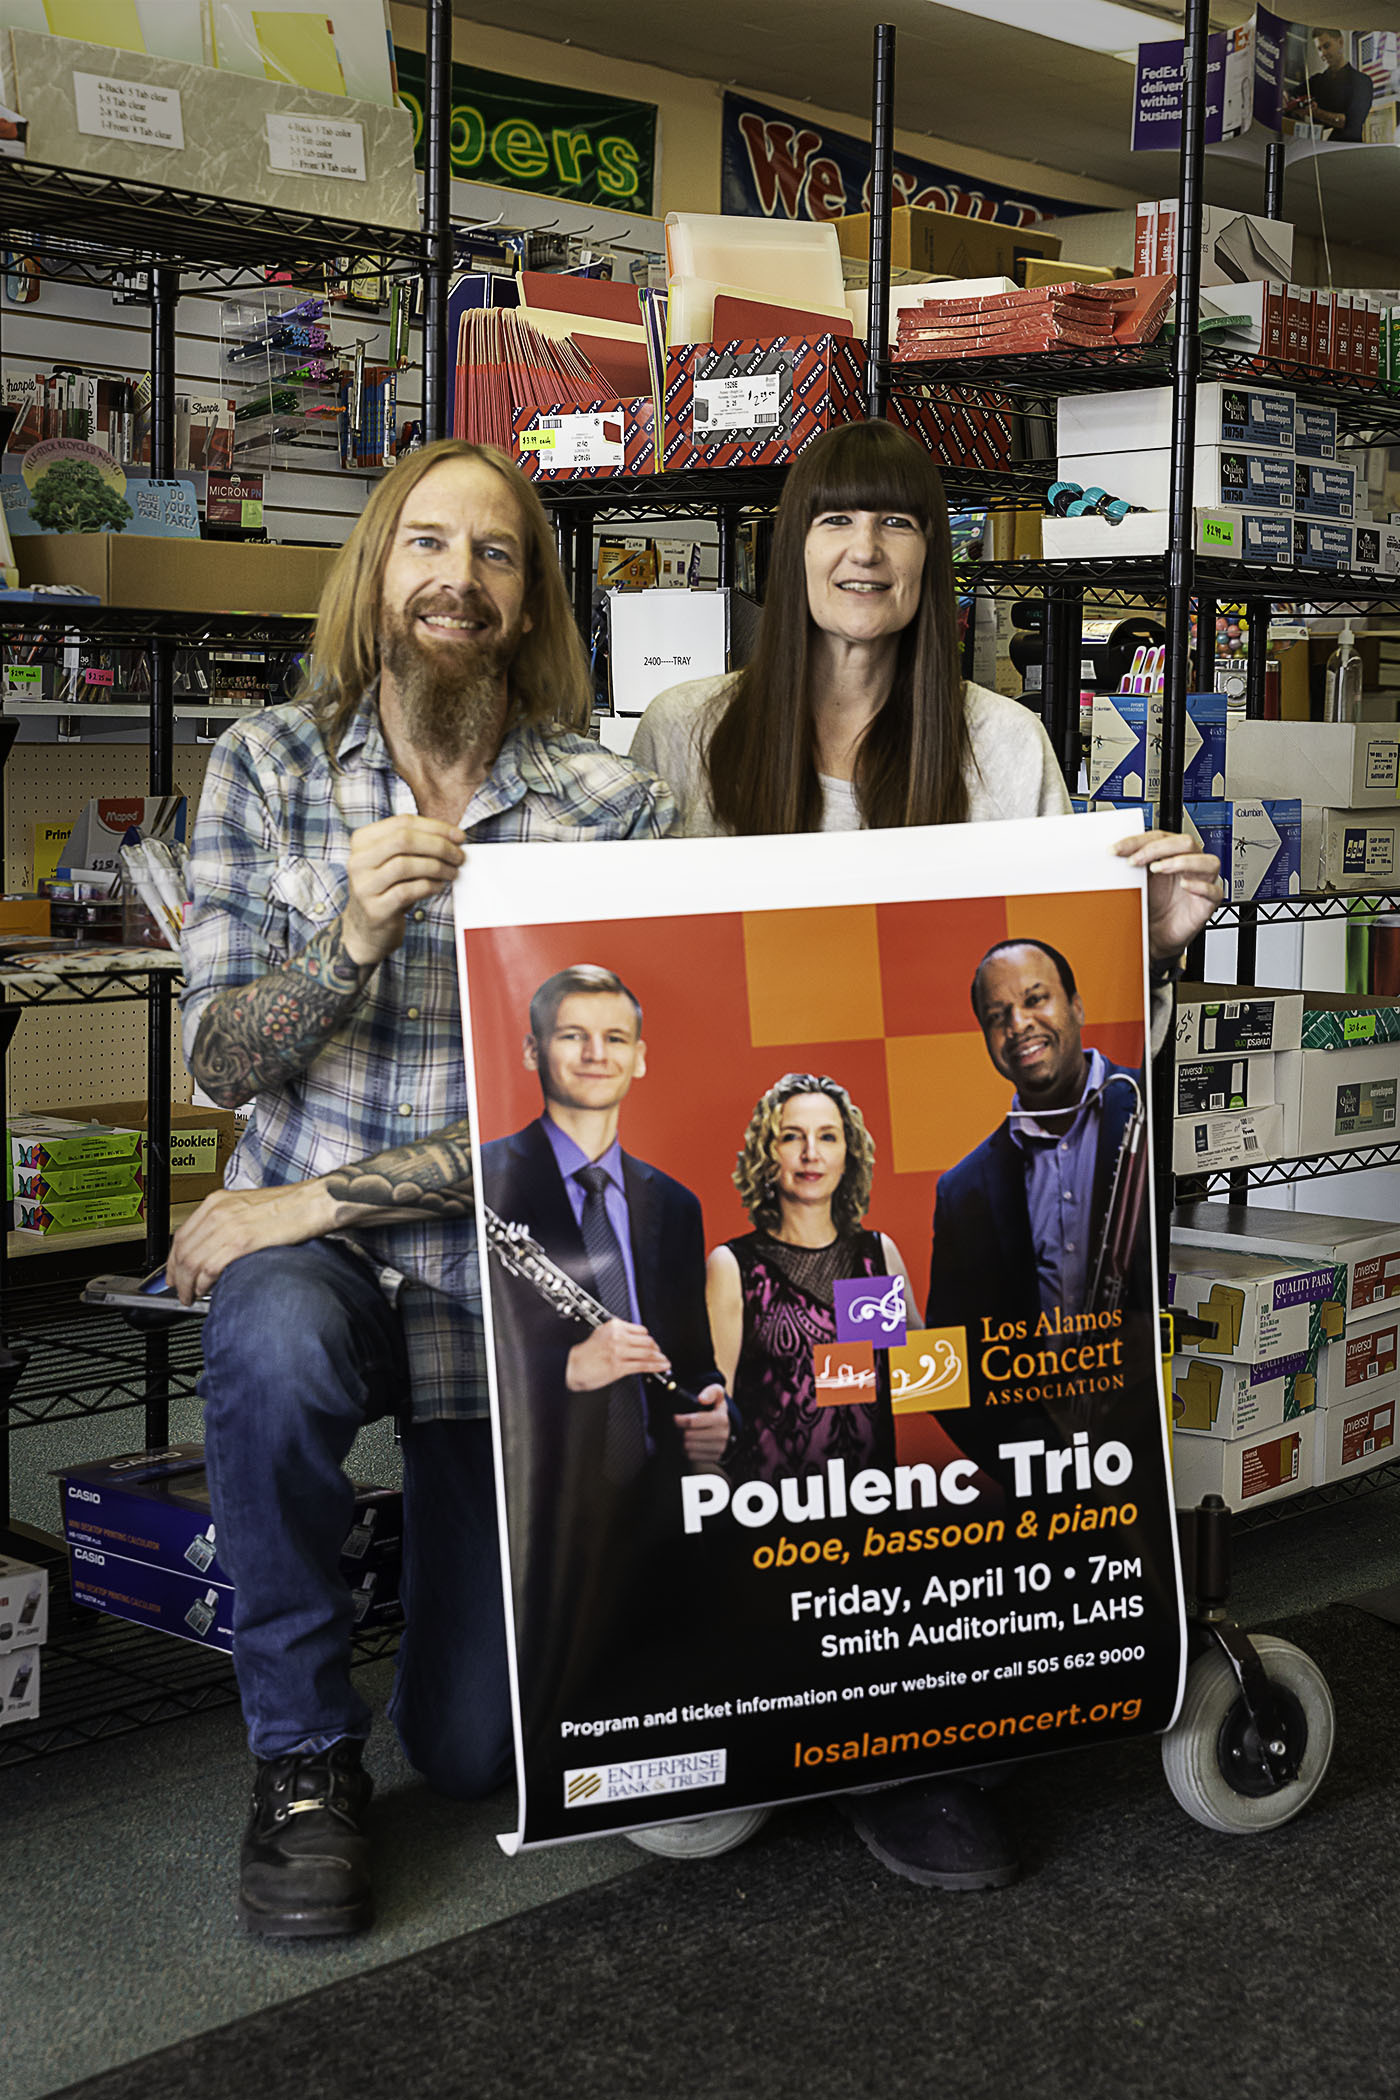 relates to 'The Hardest Thing in the World:' A Copy Shop Struggles To Make Rent